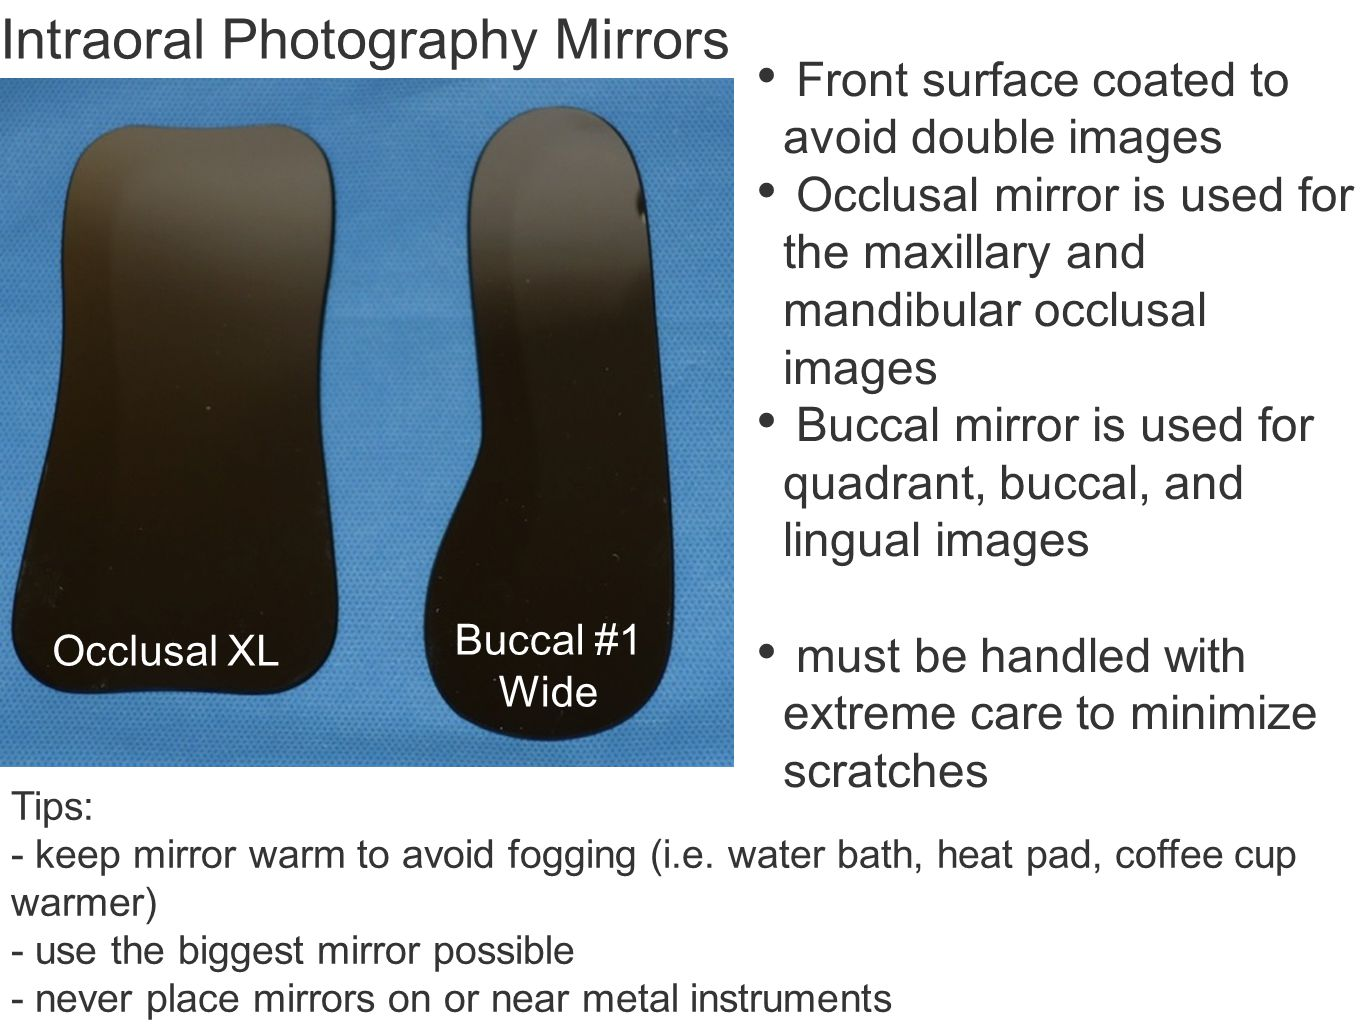 Intraoral Photography Mirrors